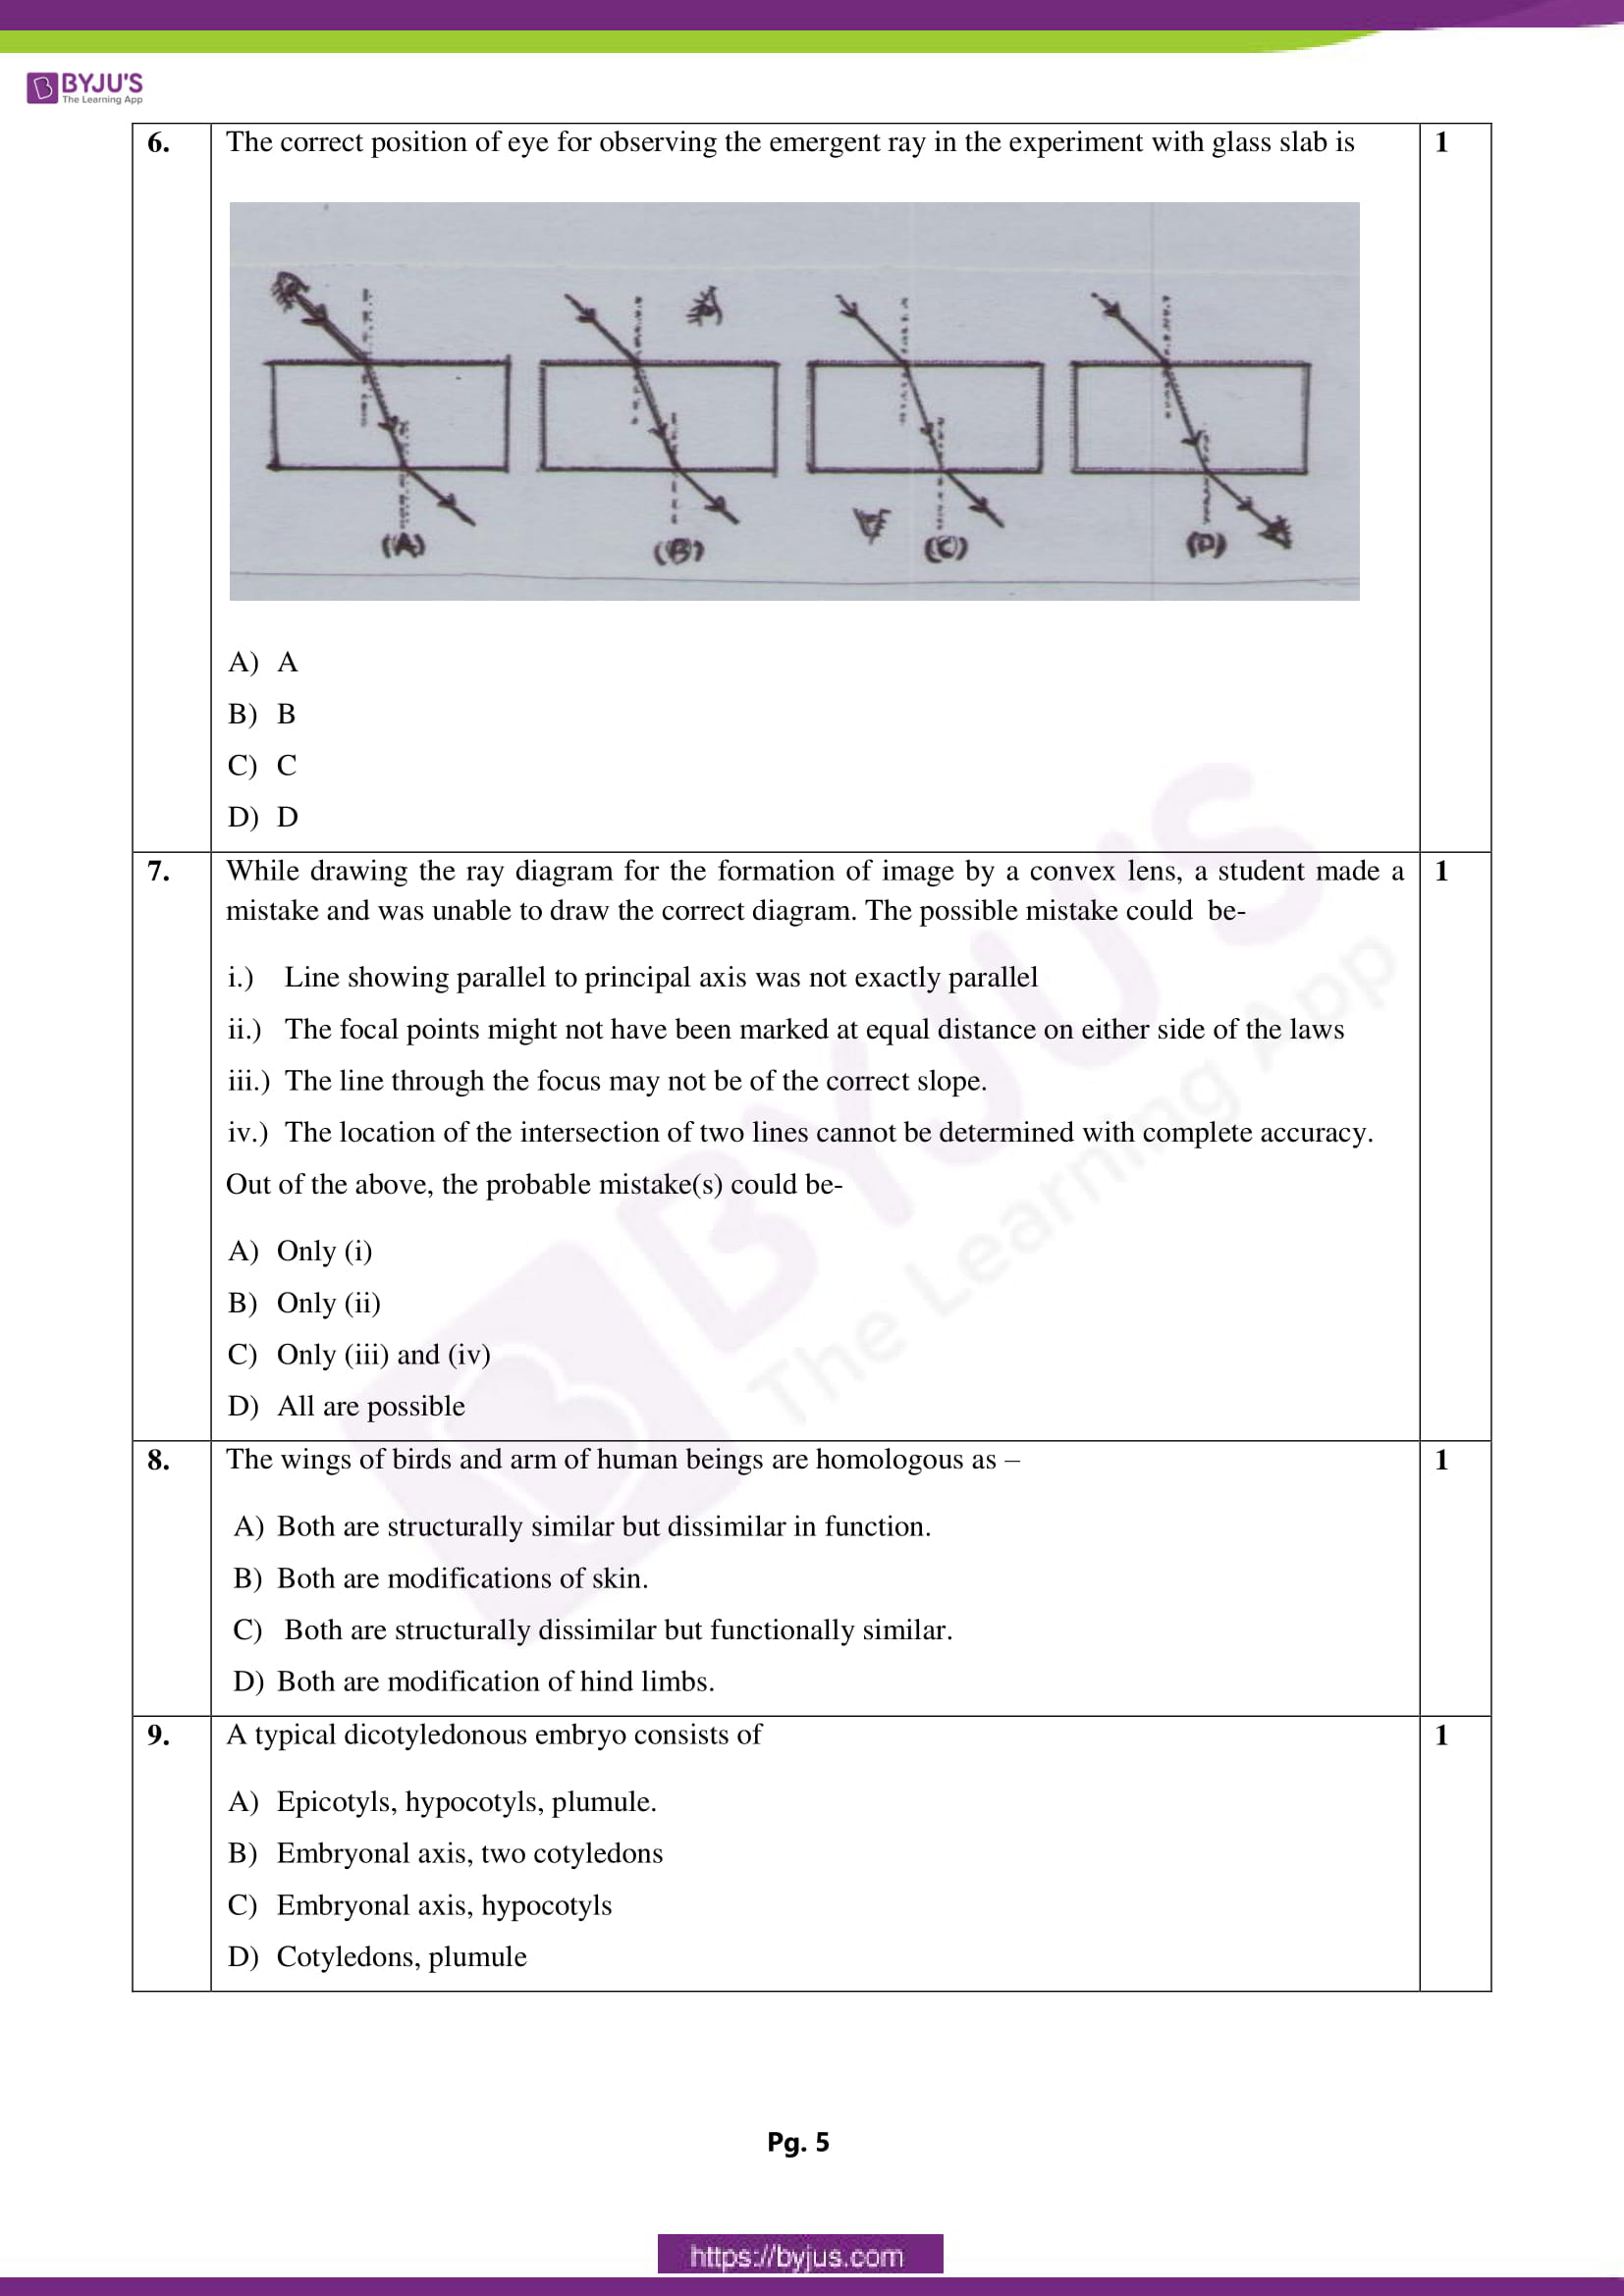 cbse class 10 science sample paper solution sa 1 set 3